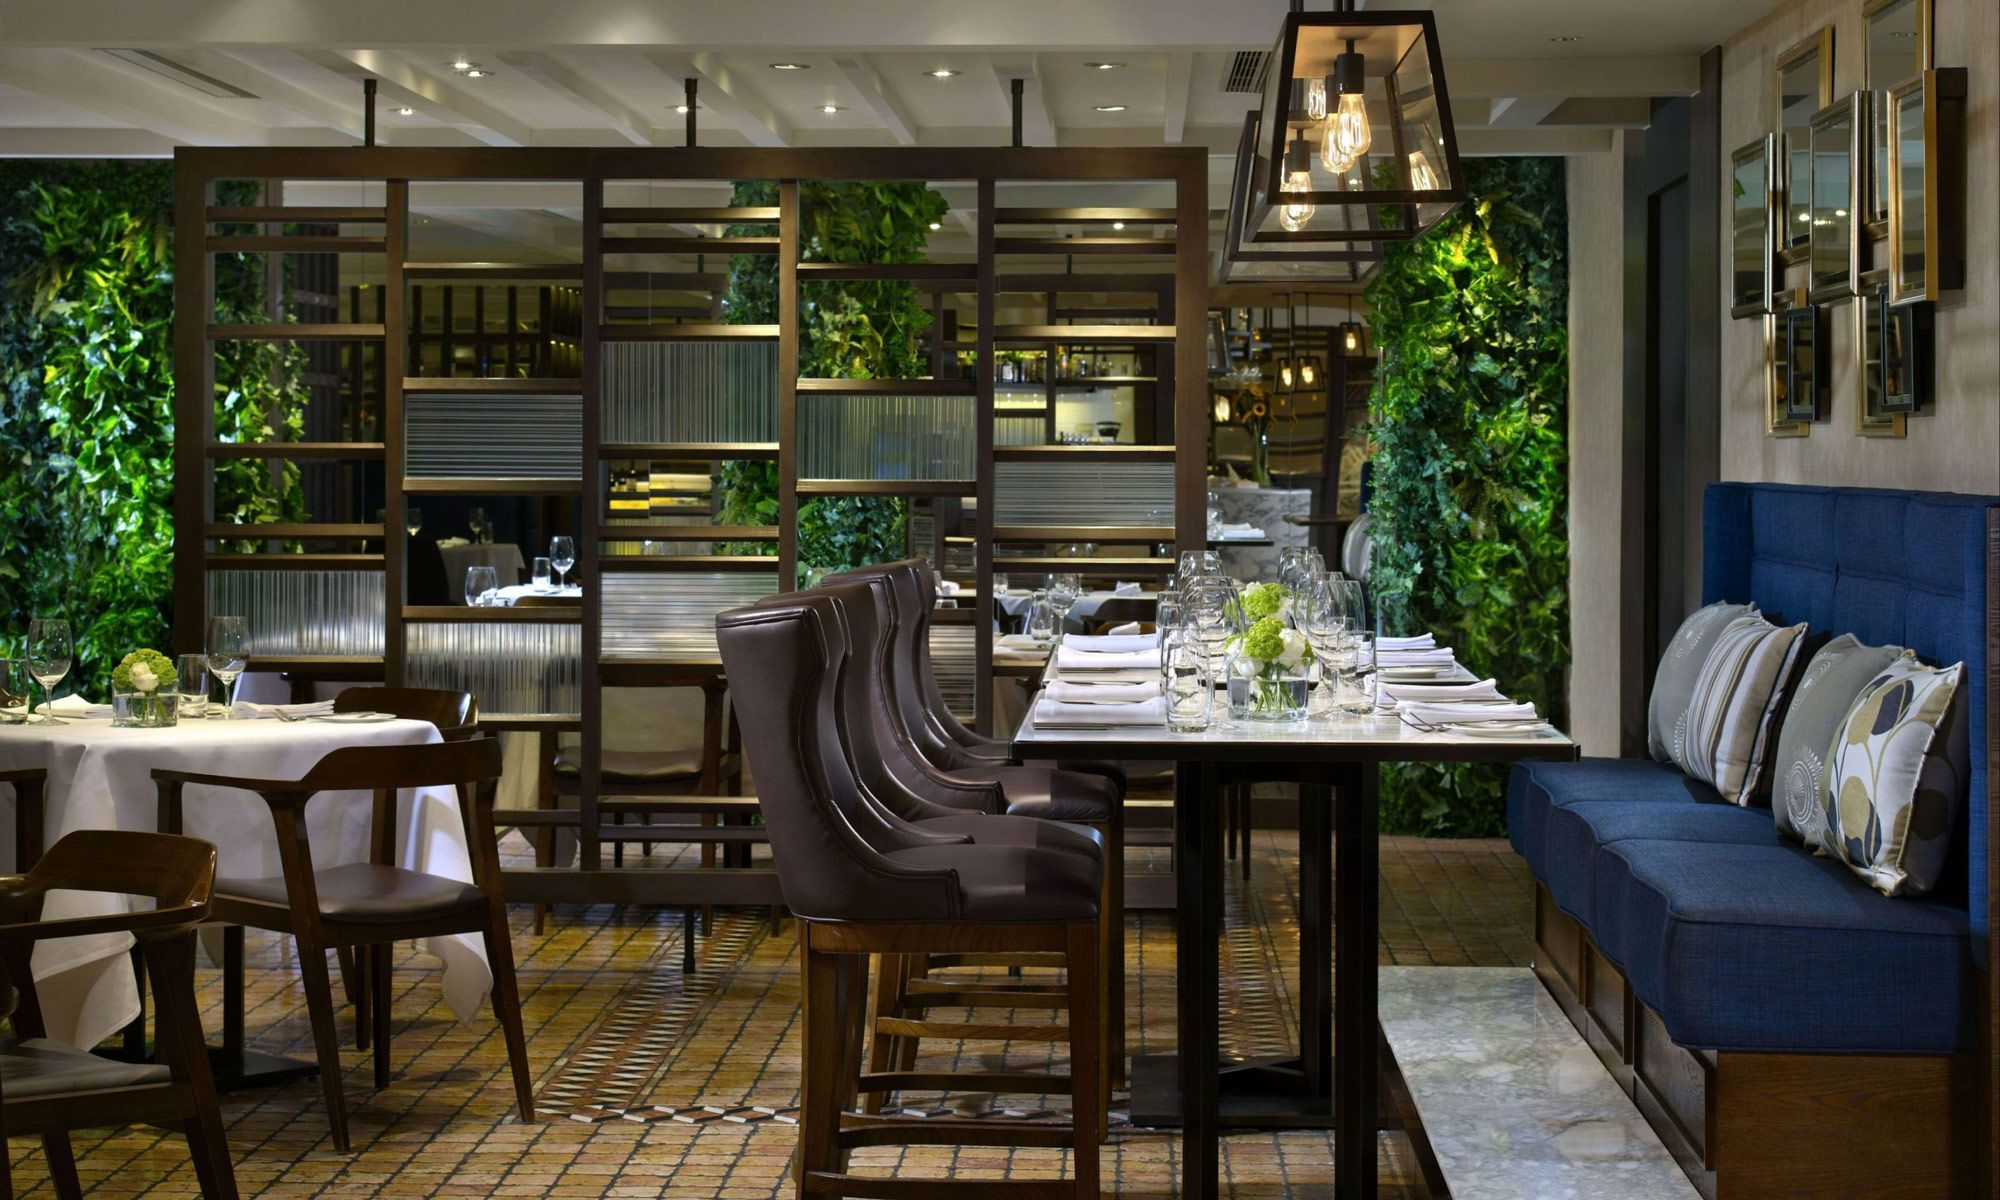 British Celebrity Chef Theo Randall To Headline The Mistral Revamp This March